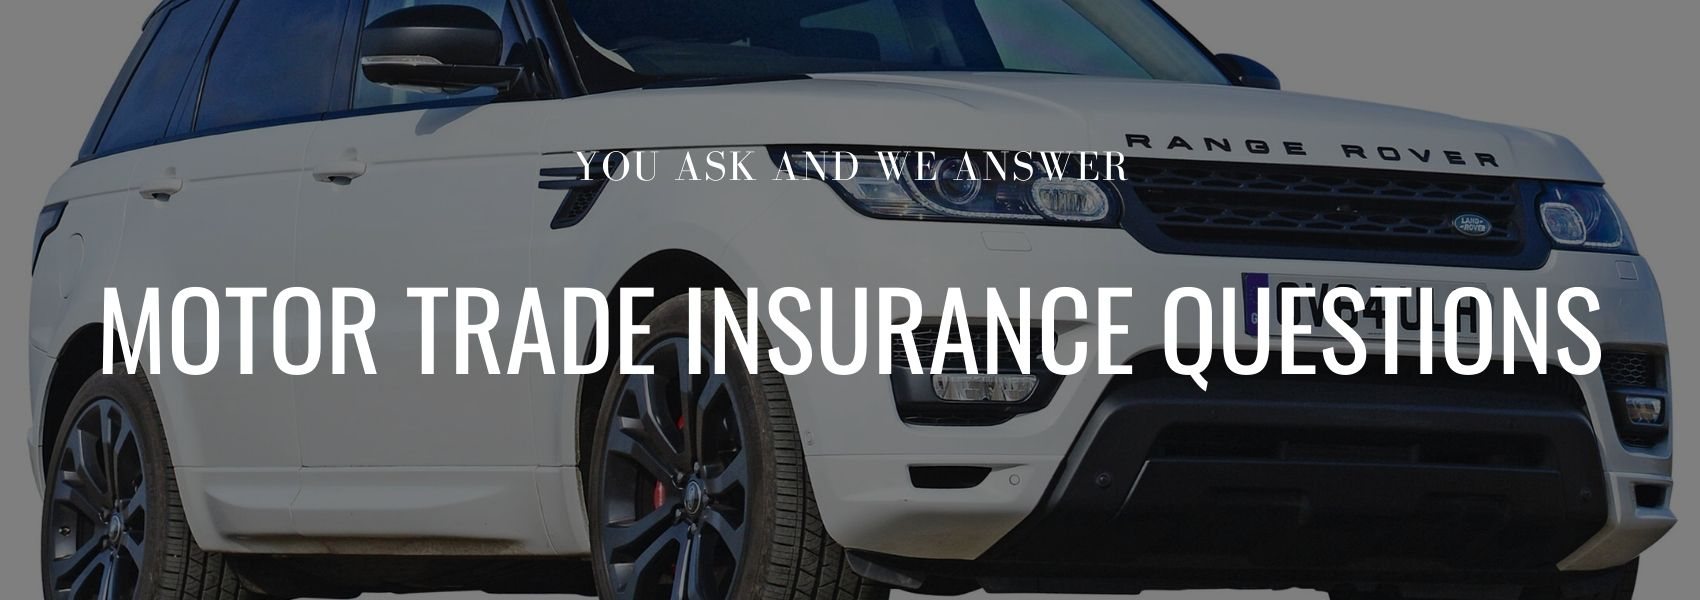 Guide on Motor Trade Insurance without No Claim Bonus Accumulation*